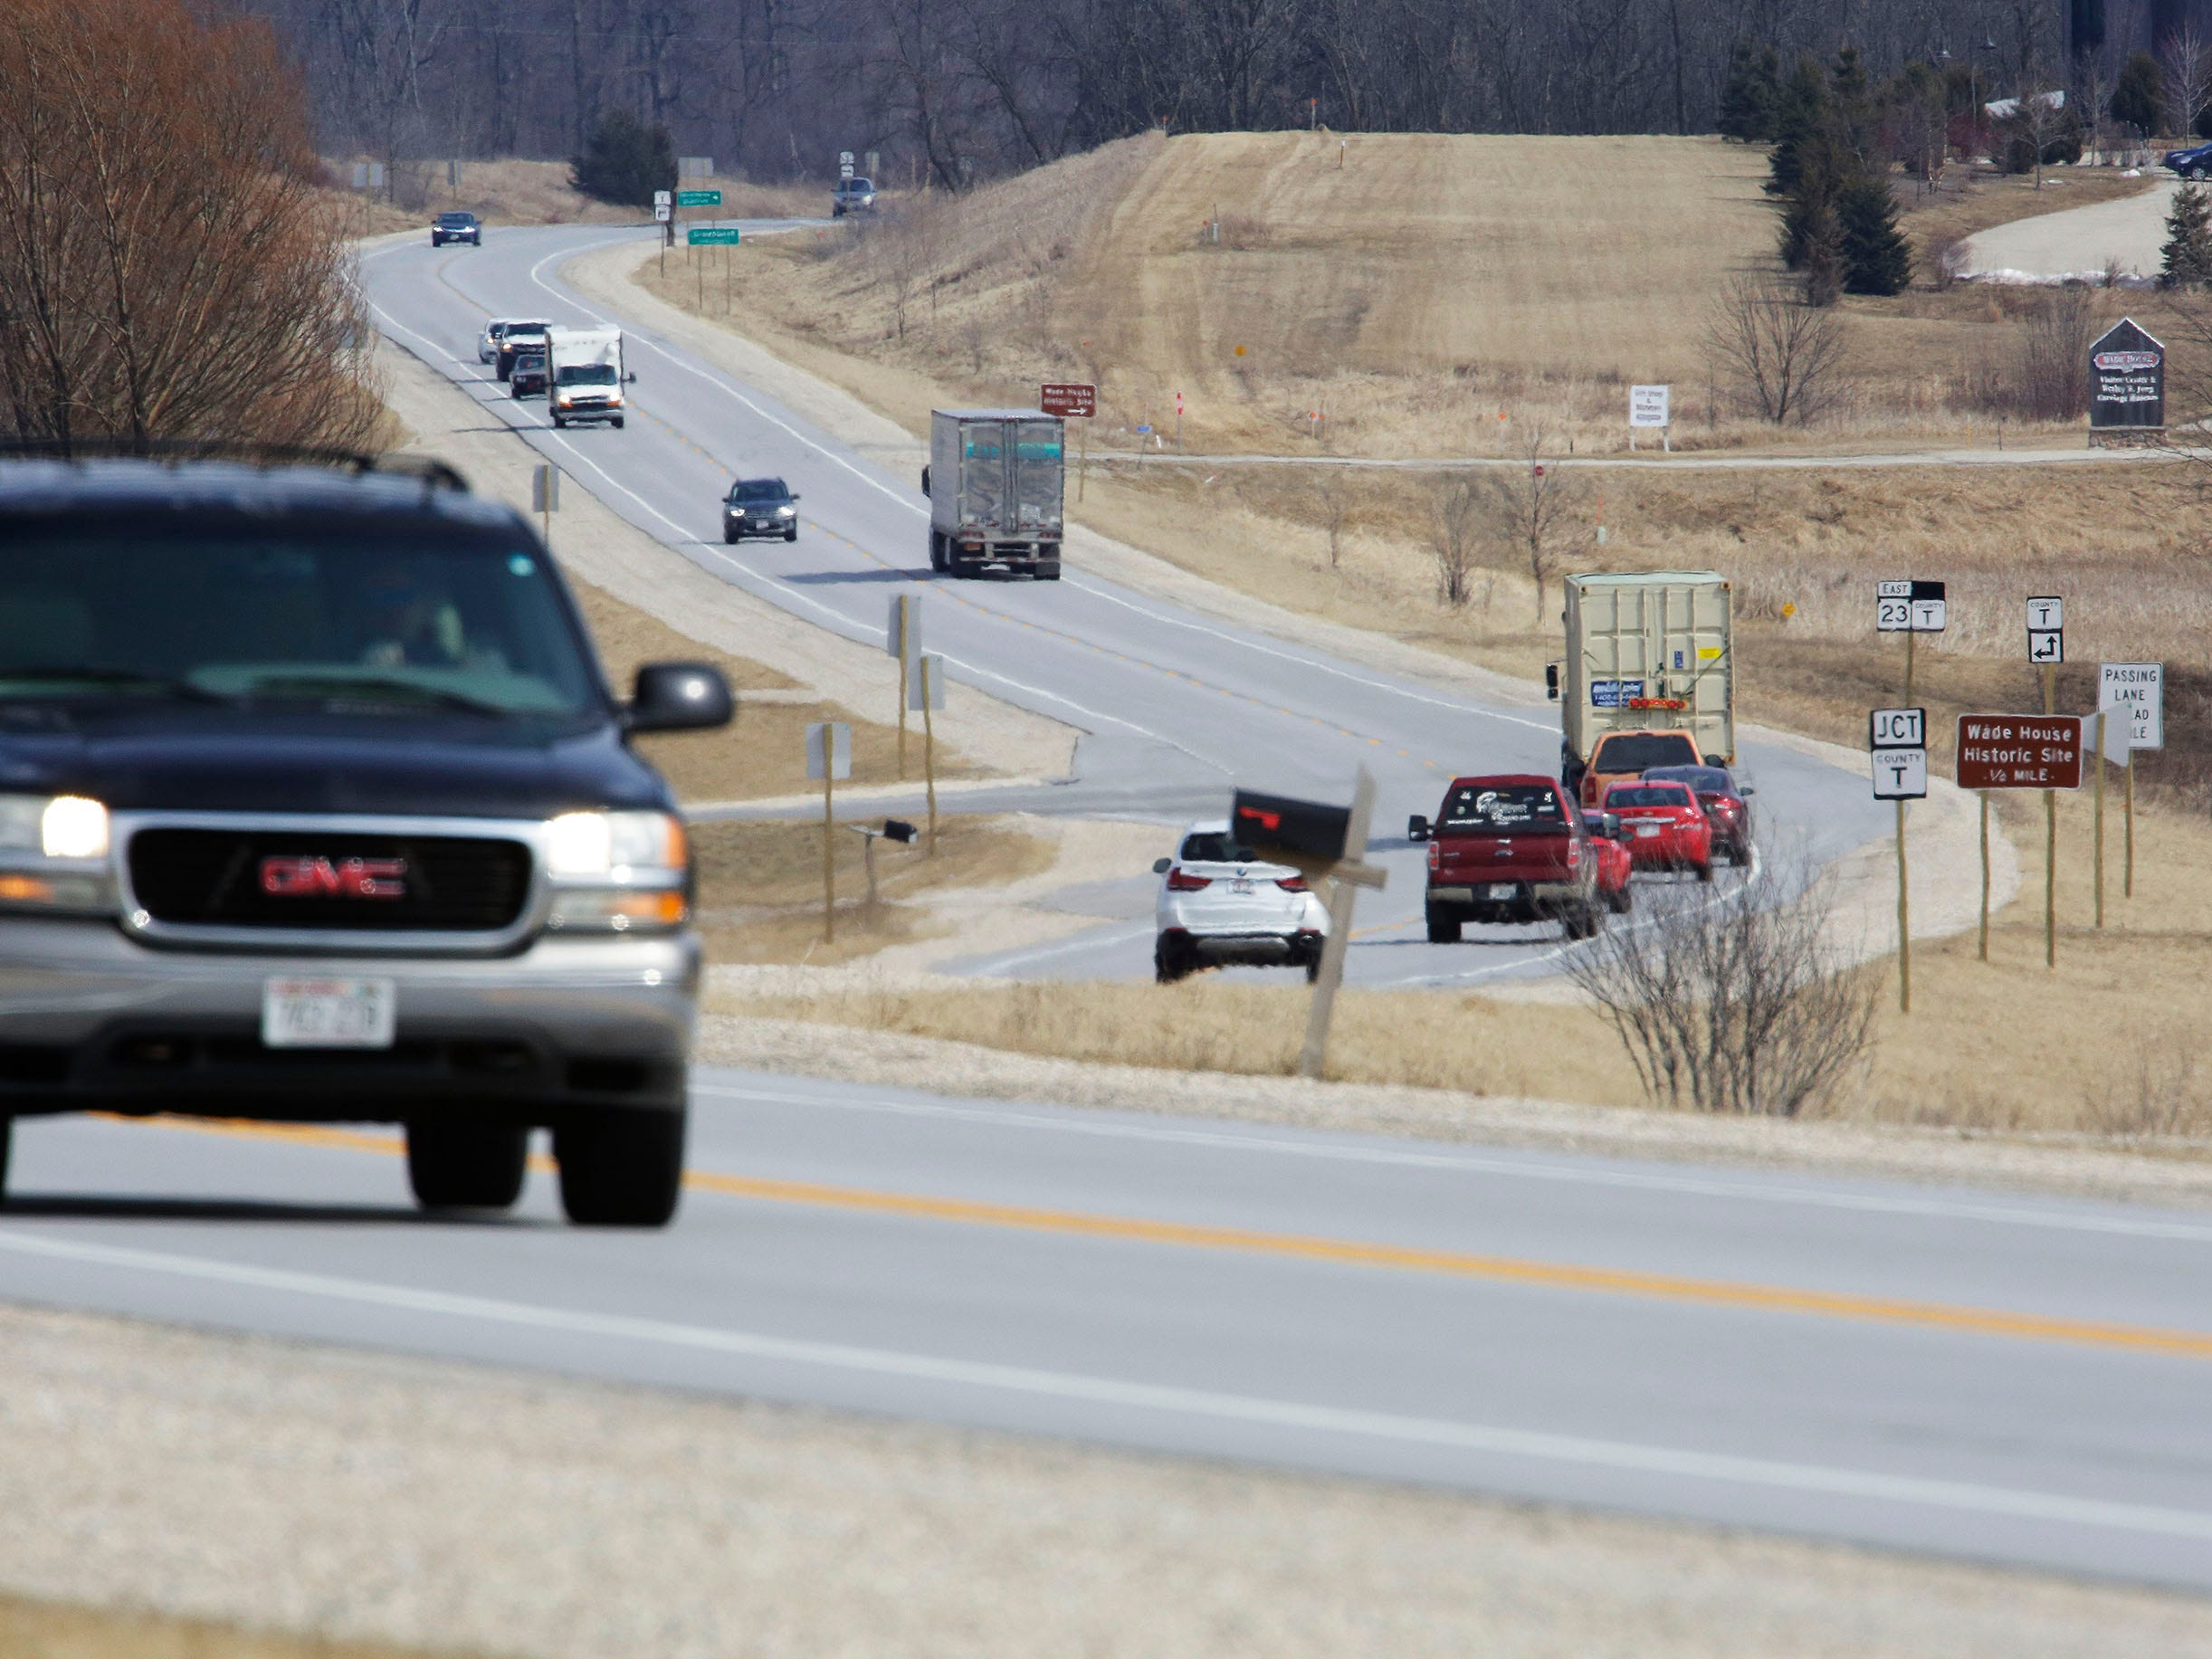 Traffic motors on state Highway 23, Wednesday, March 27, 2019, near Greenbush, Wis.